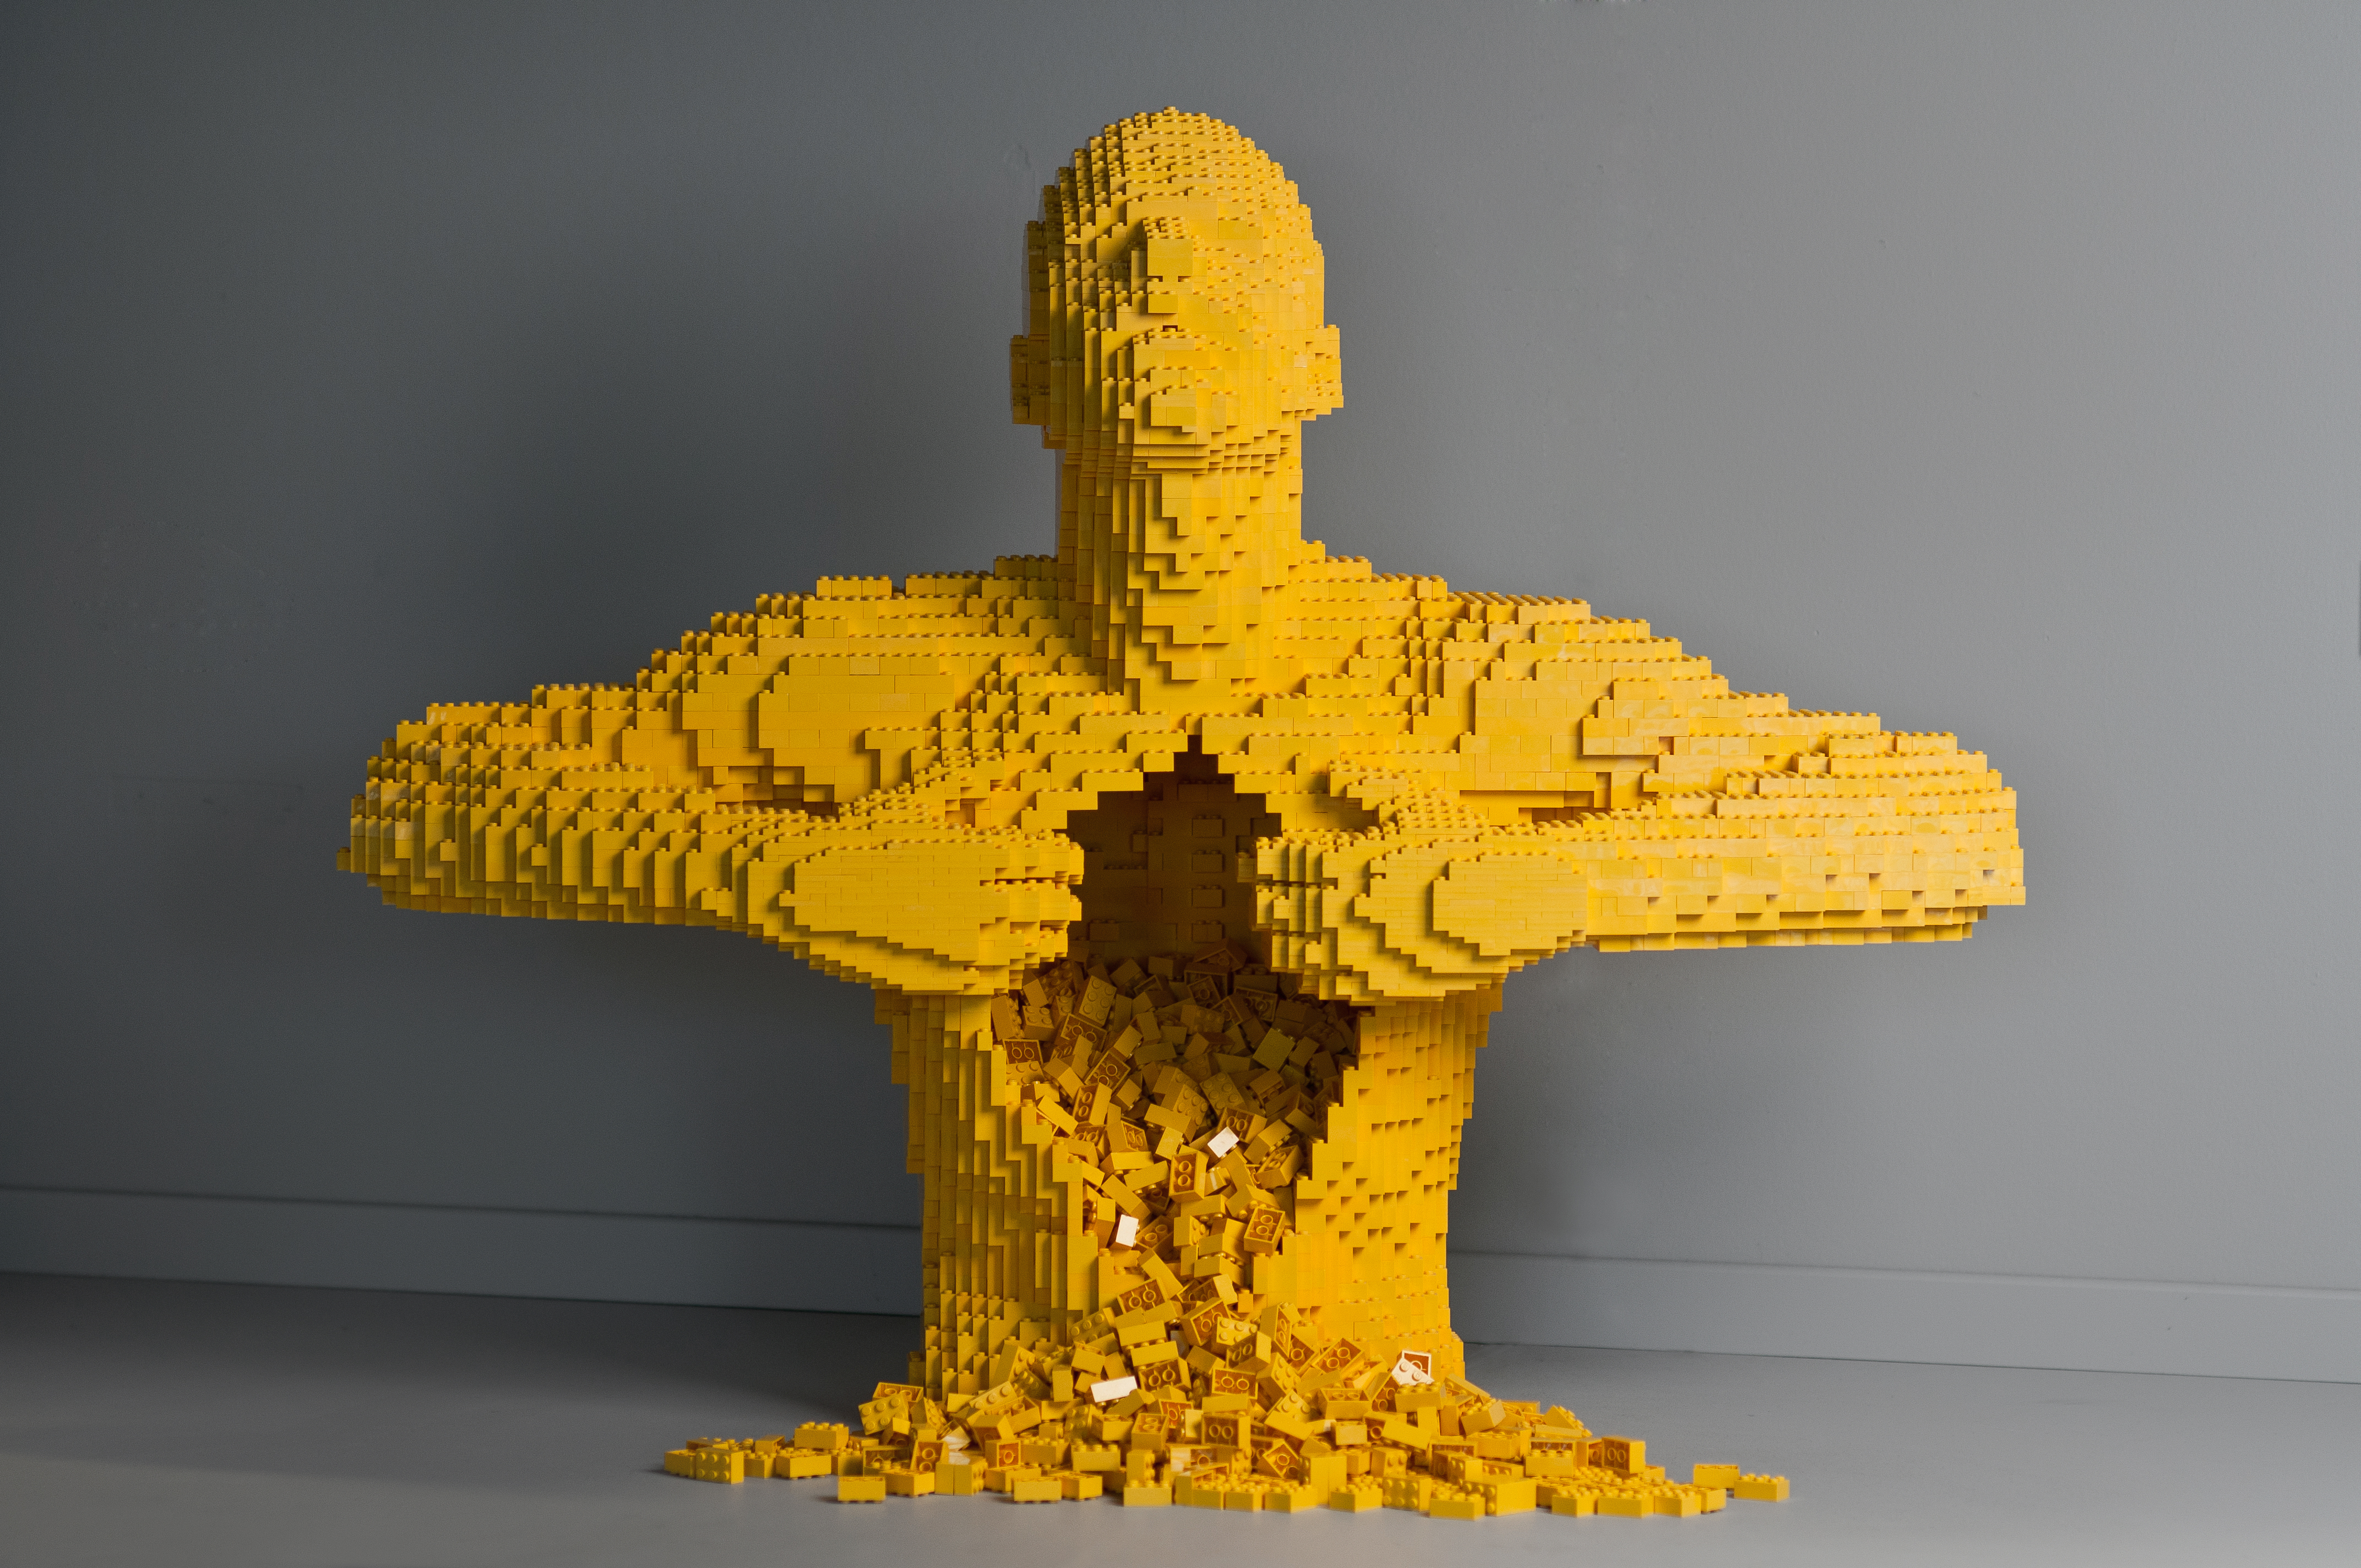 Yellow by artist Nathan Sawaya. Photo courtesy of brickartist.com